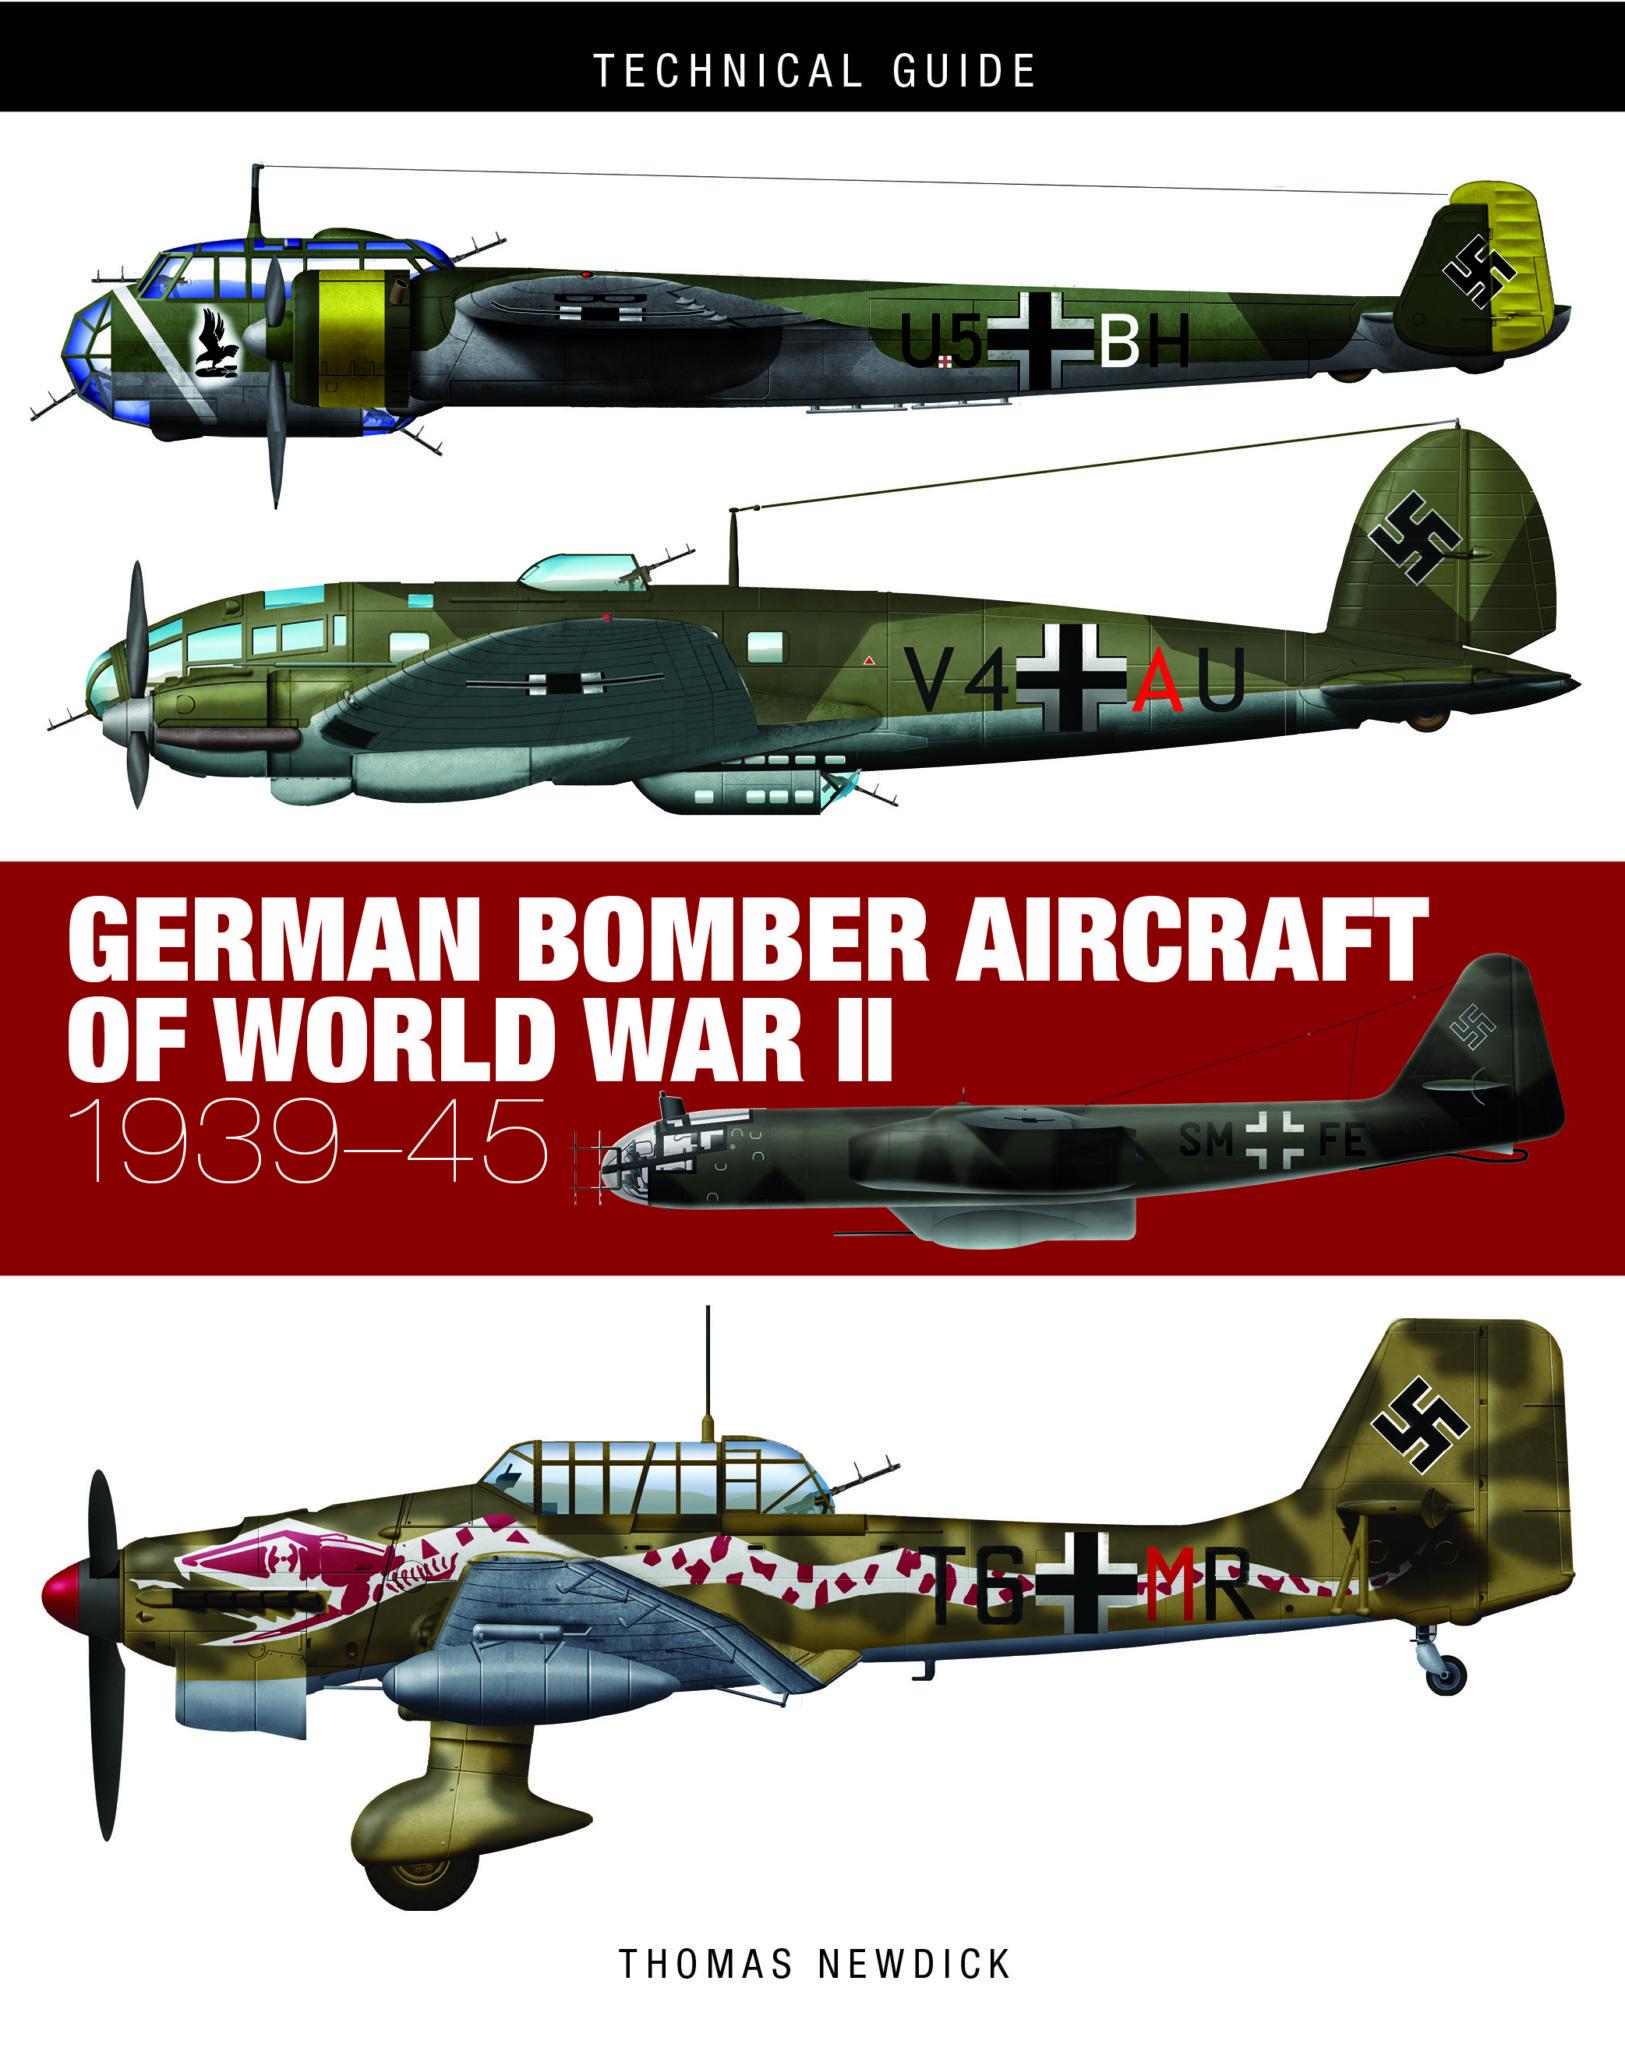 German Bomber Aircraft of World War II: Technical Guide [128pp]